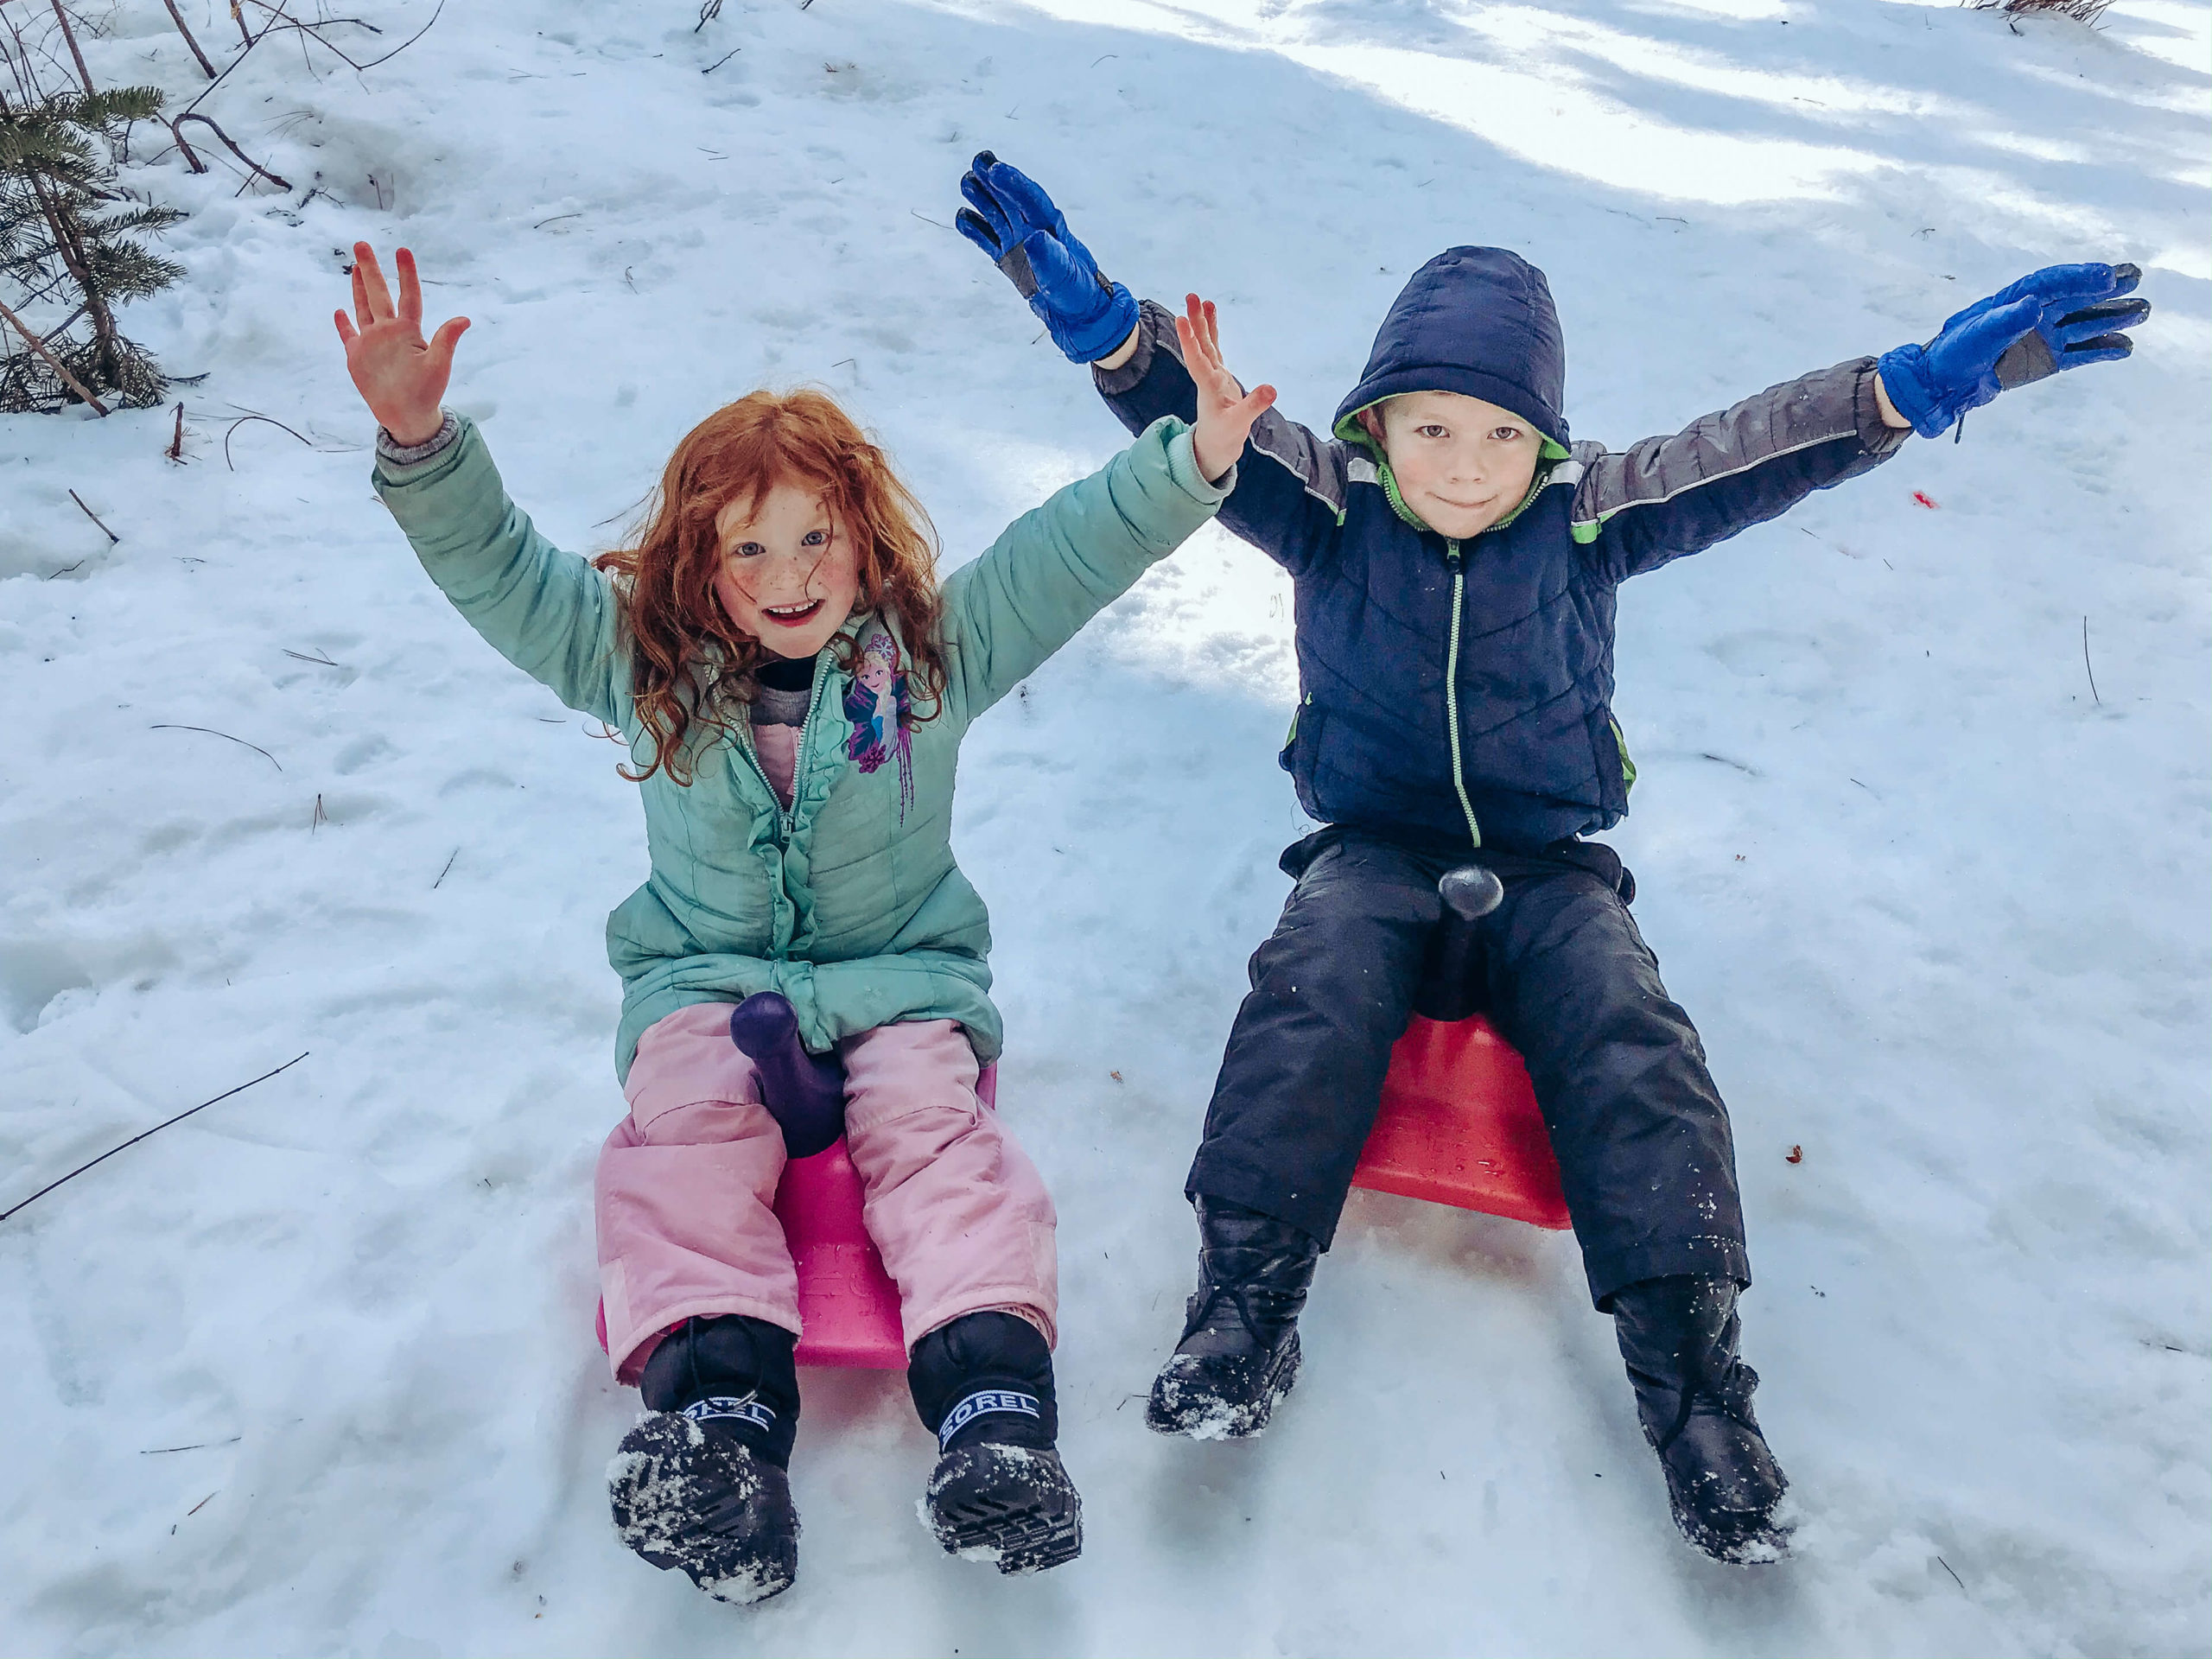 Two kids sitting on sleds with their arms up, surrounded by snow.